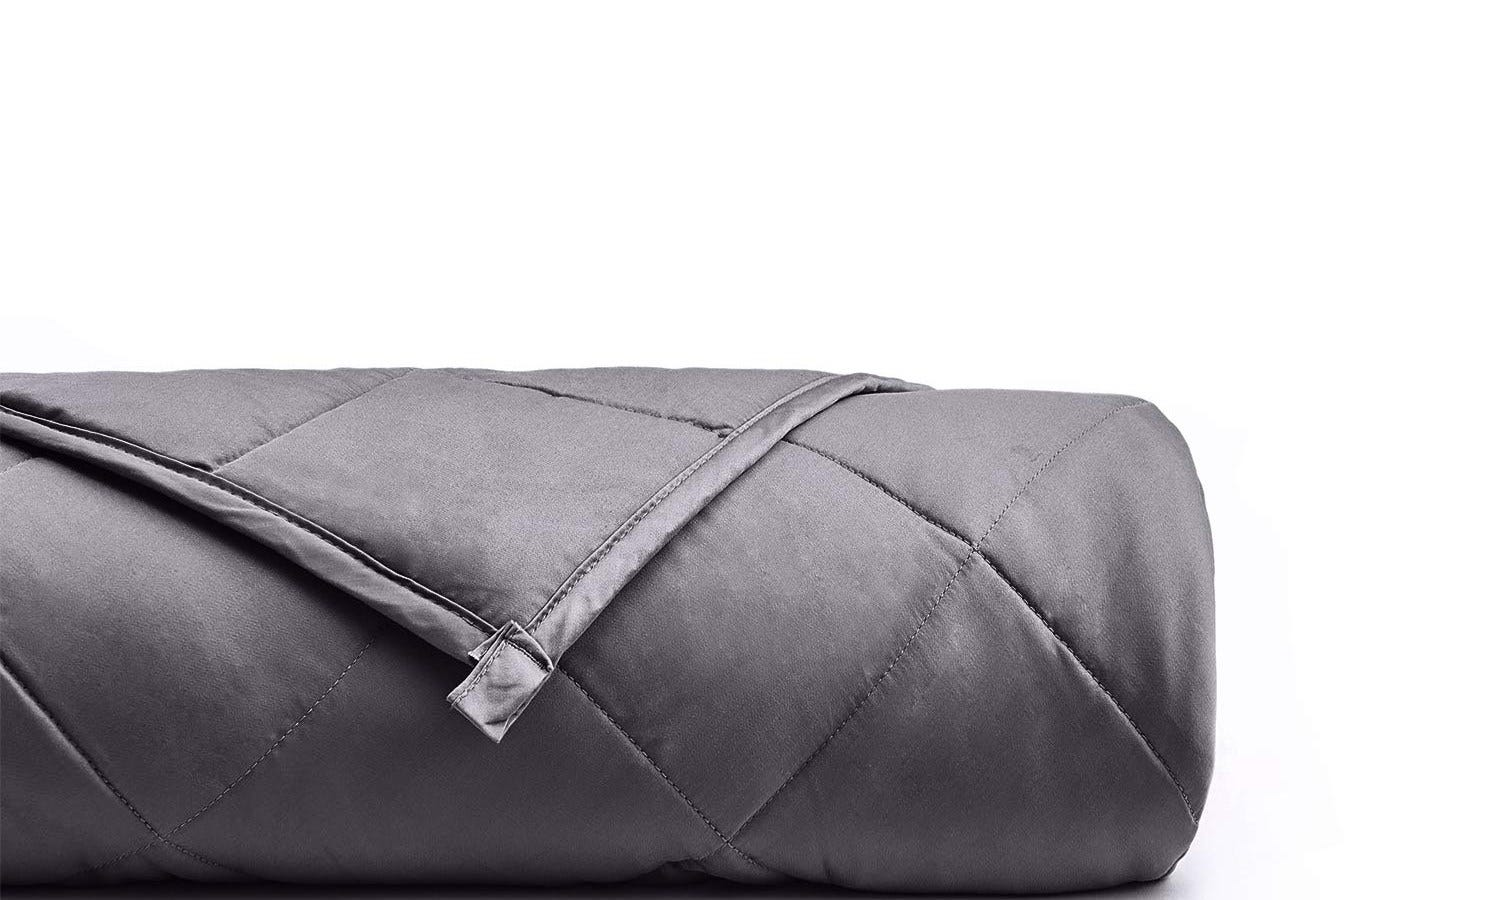 YnM rolled-up, dark gray, weighted blanket.